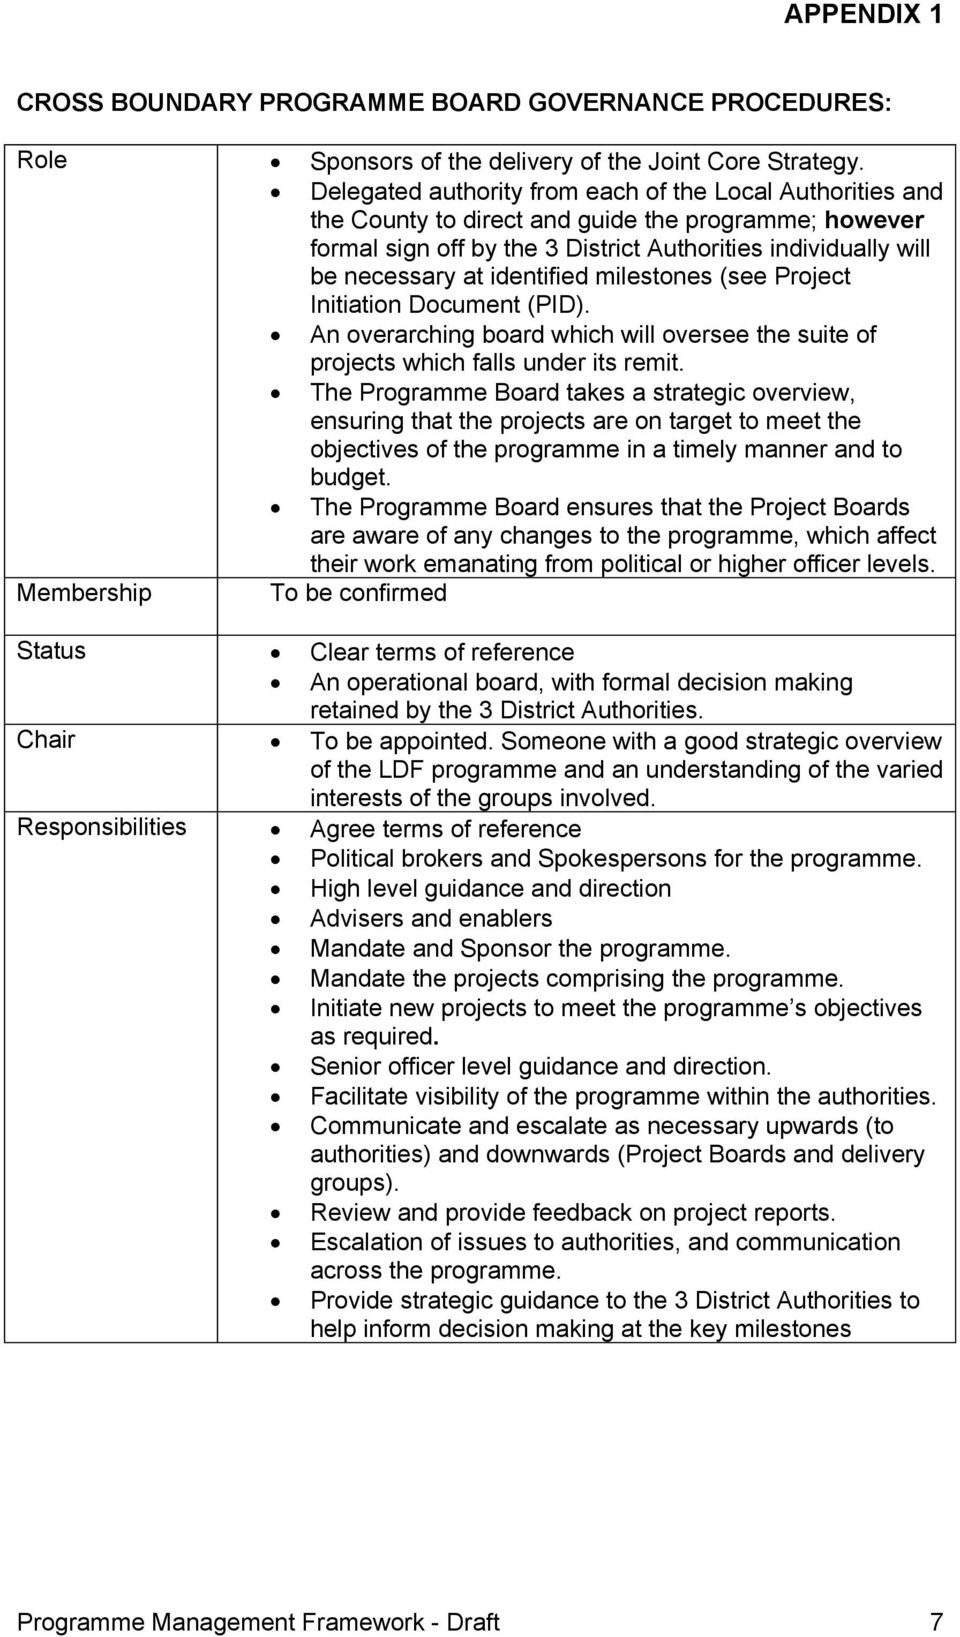 identified milestones (see Project Initiation Document (PID). An overarching board which will oversee the suite of projects which falls under its remit.